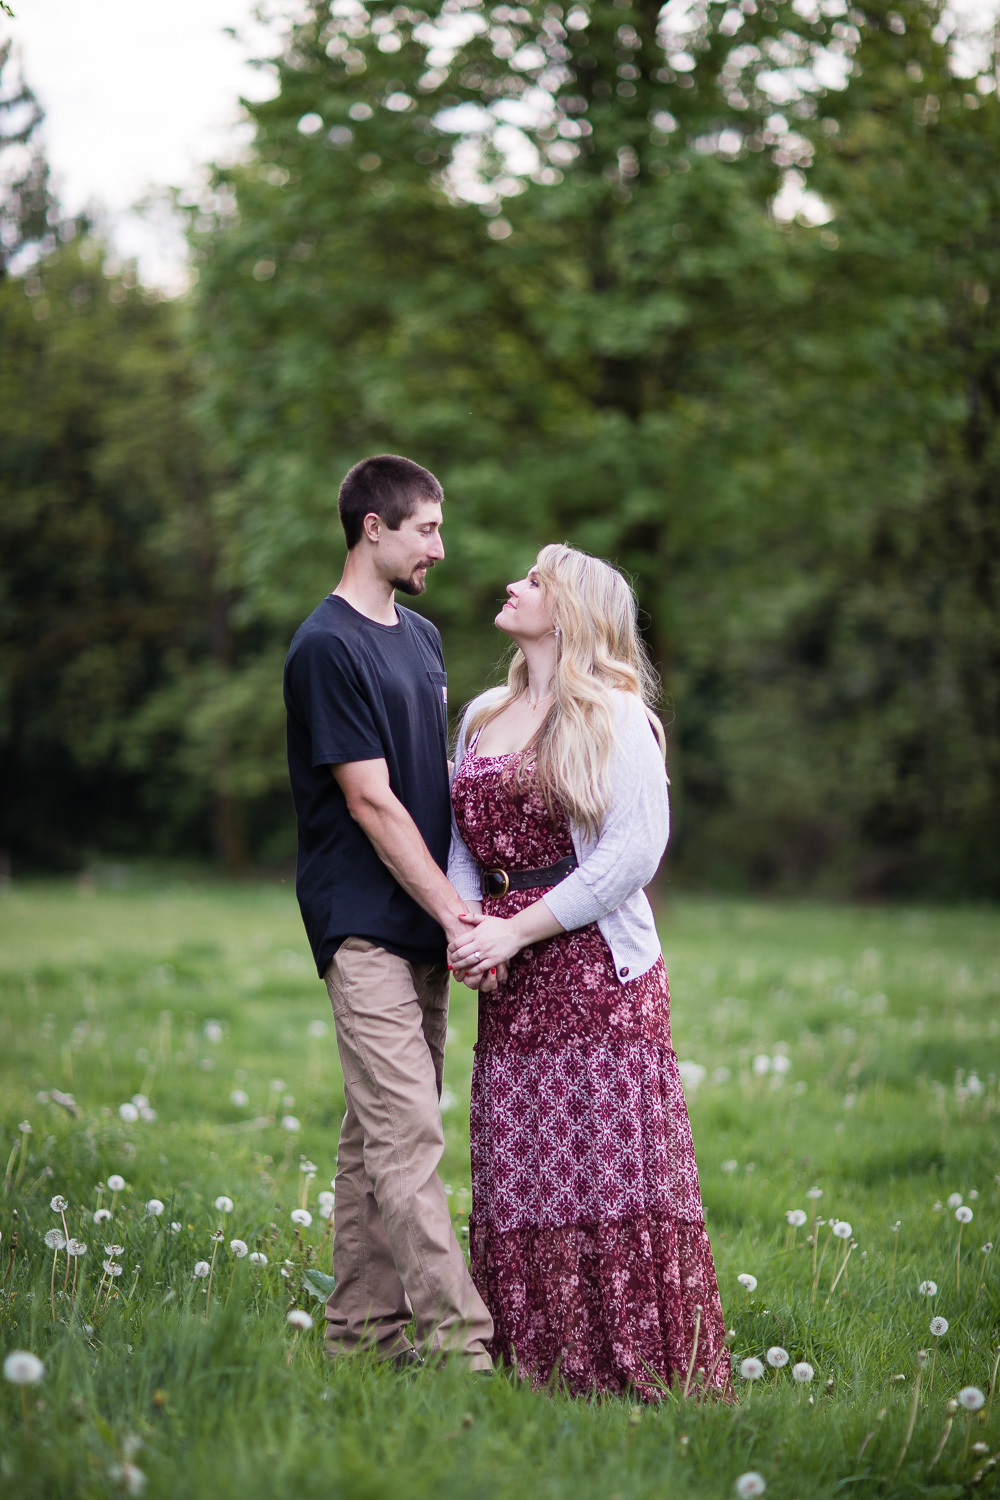 backyard-country-style-engagement-harth-photography-102.jpg